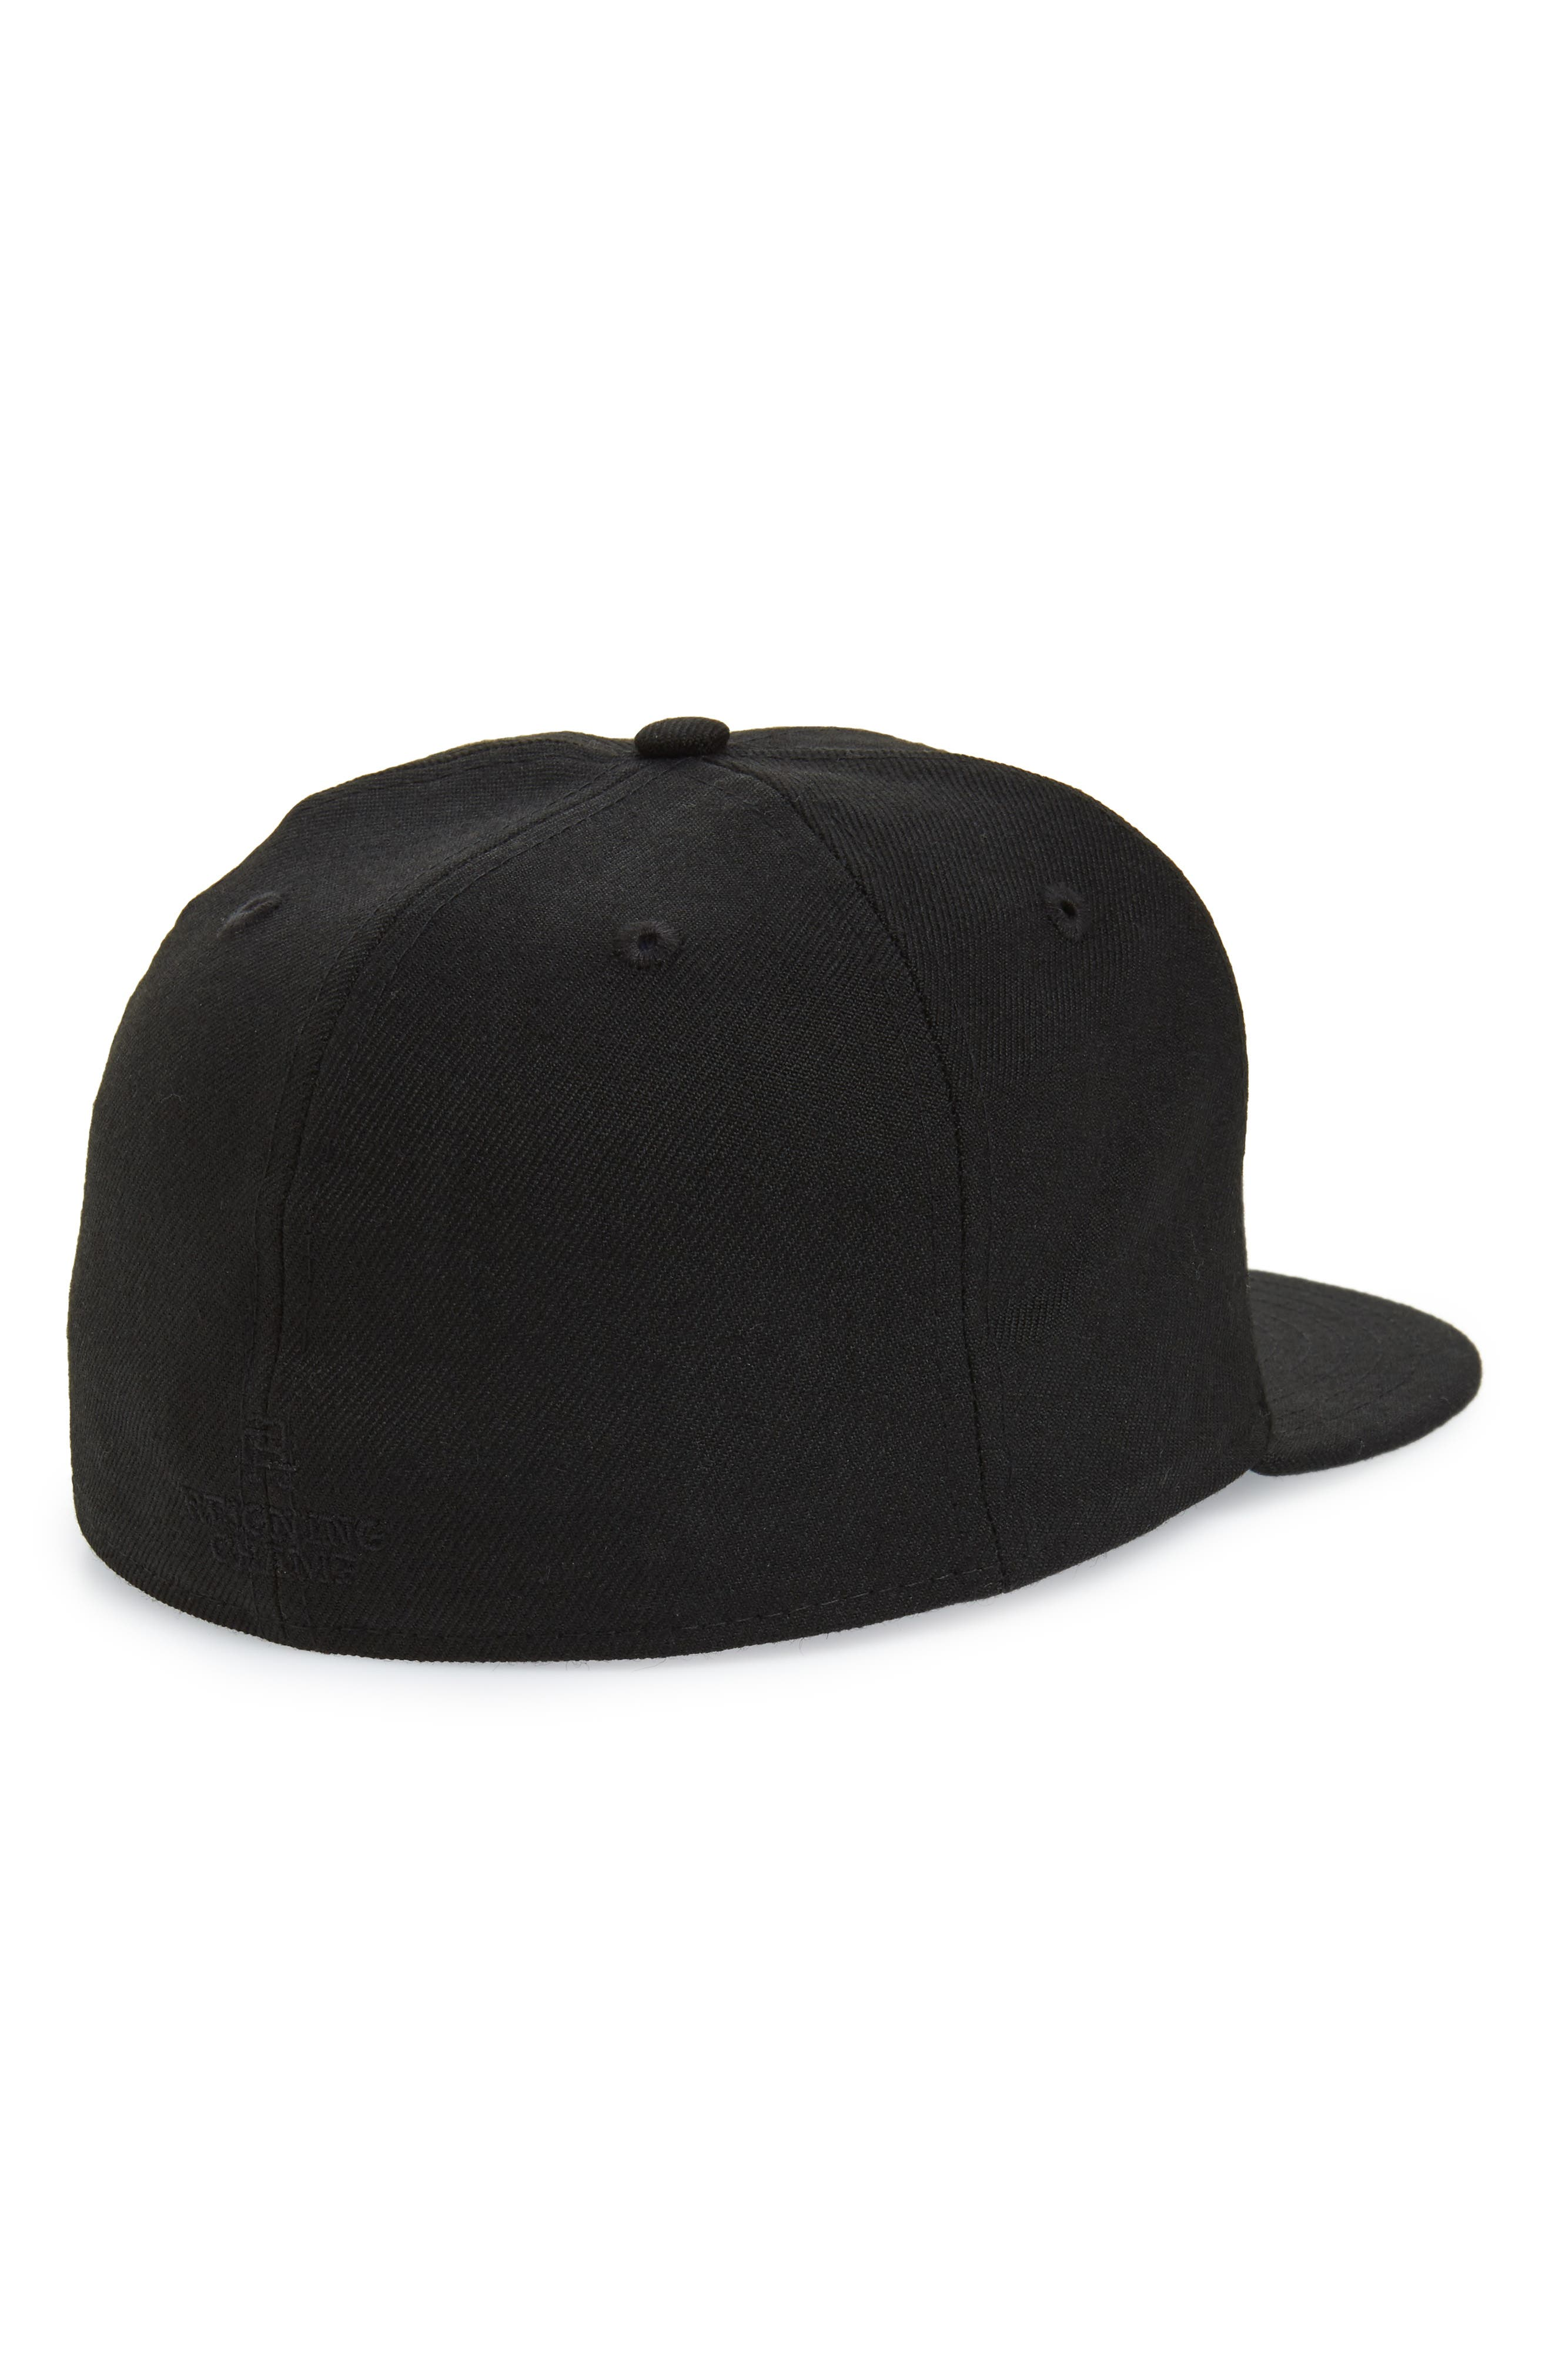 REIGNING CHAMP, New Era Fitted Baseball Cap, Alternate thumbnail 2, color, BLACK / BLACK